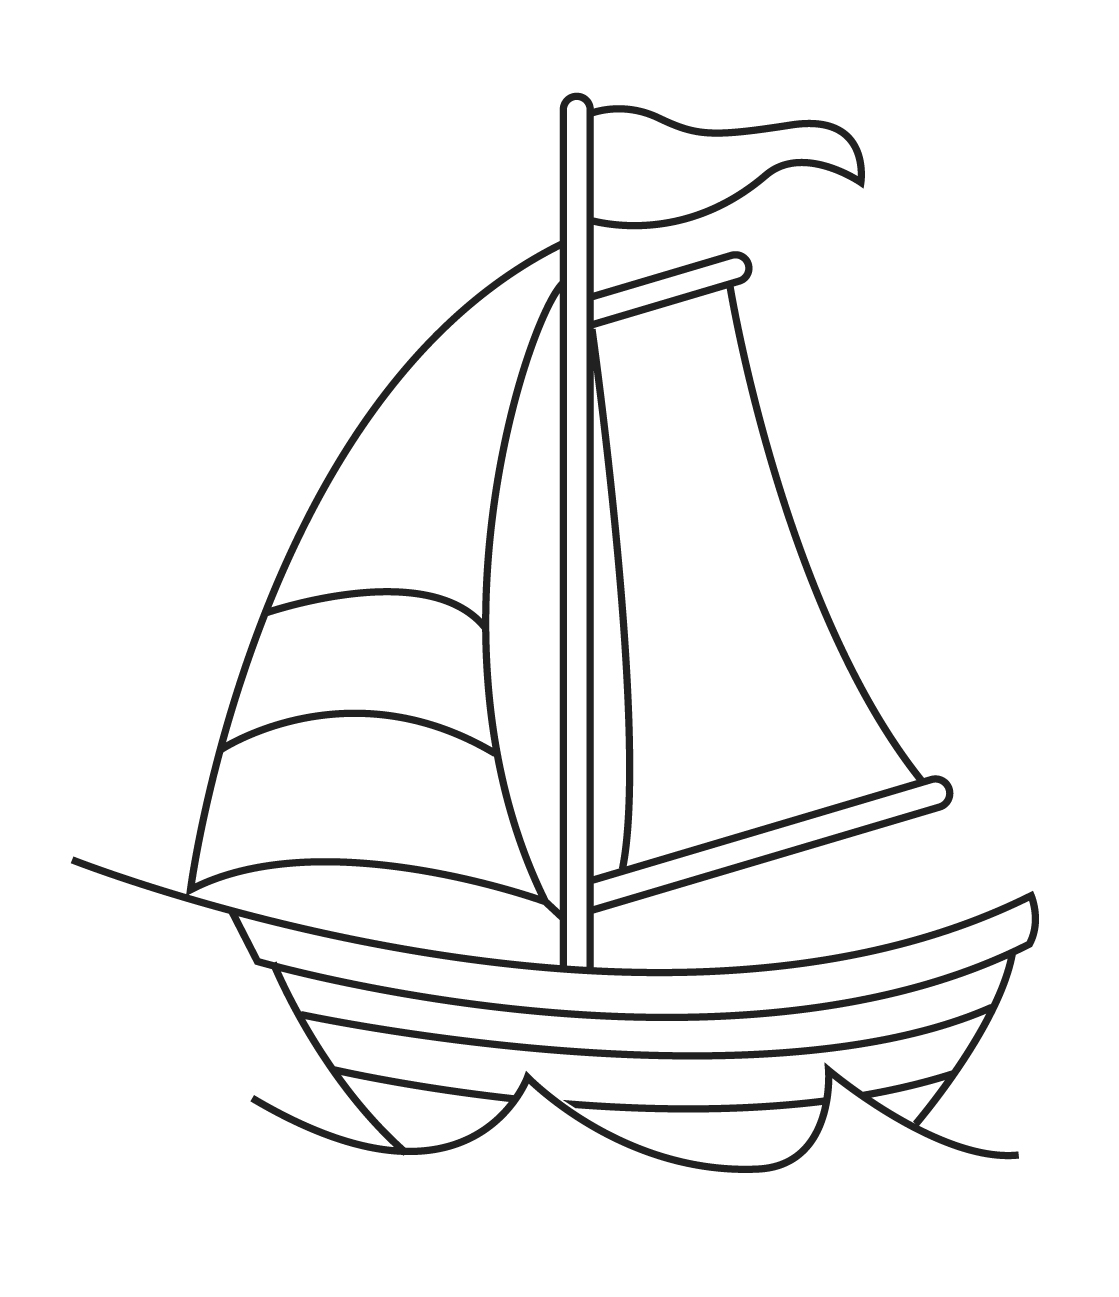 how to draw a fishing boat step by step black and white sailboat clipart clipground a boat by draw step to how fishing step